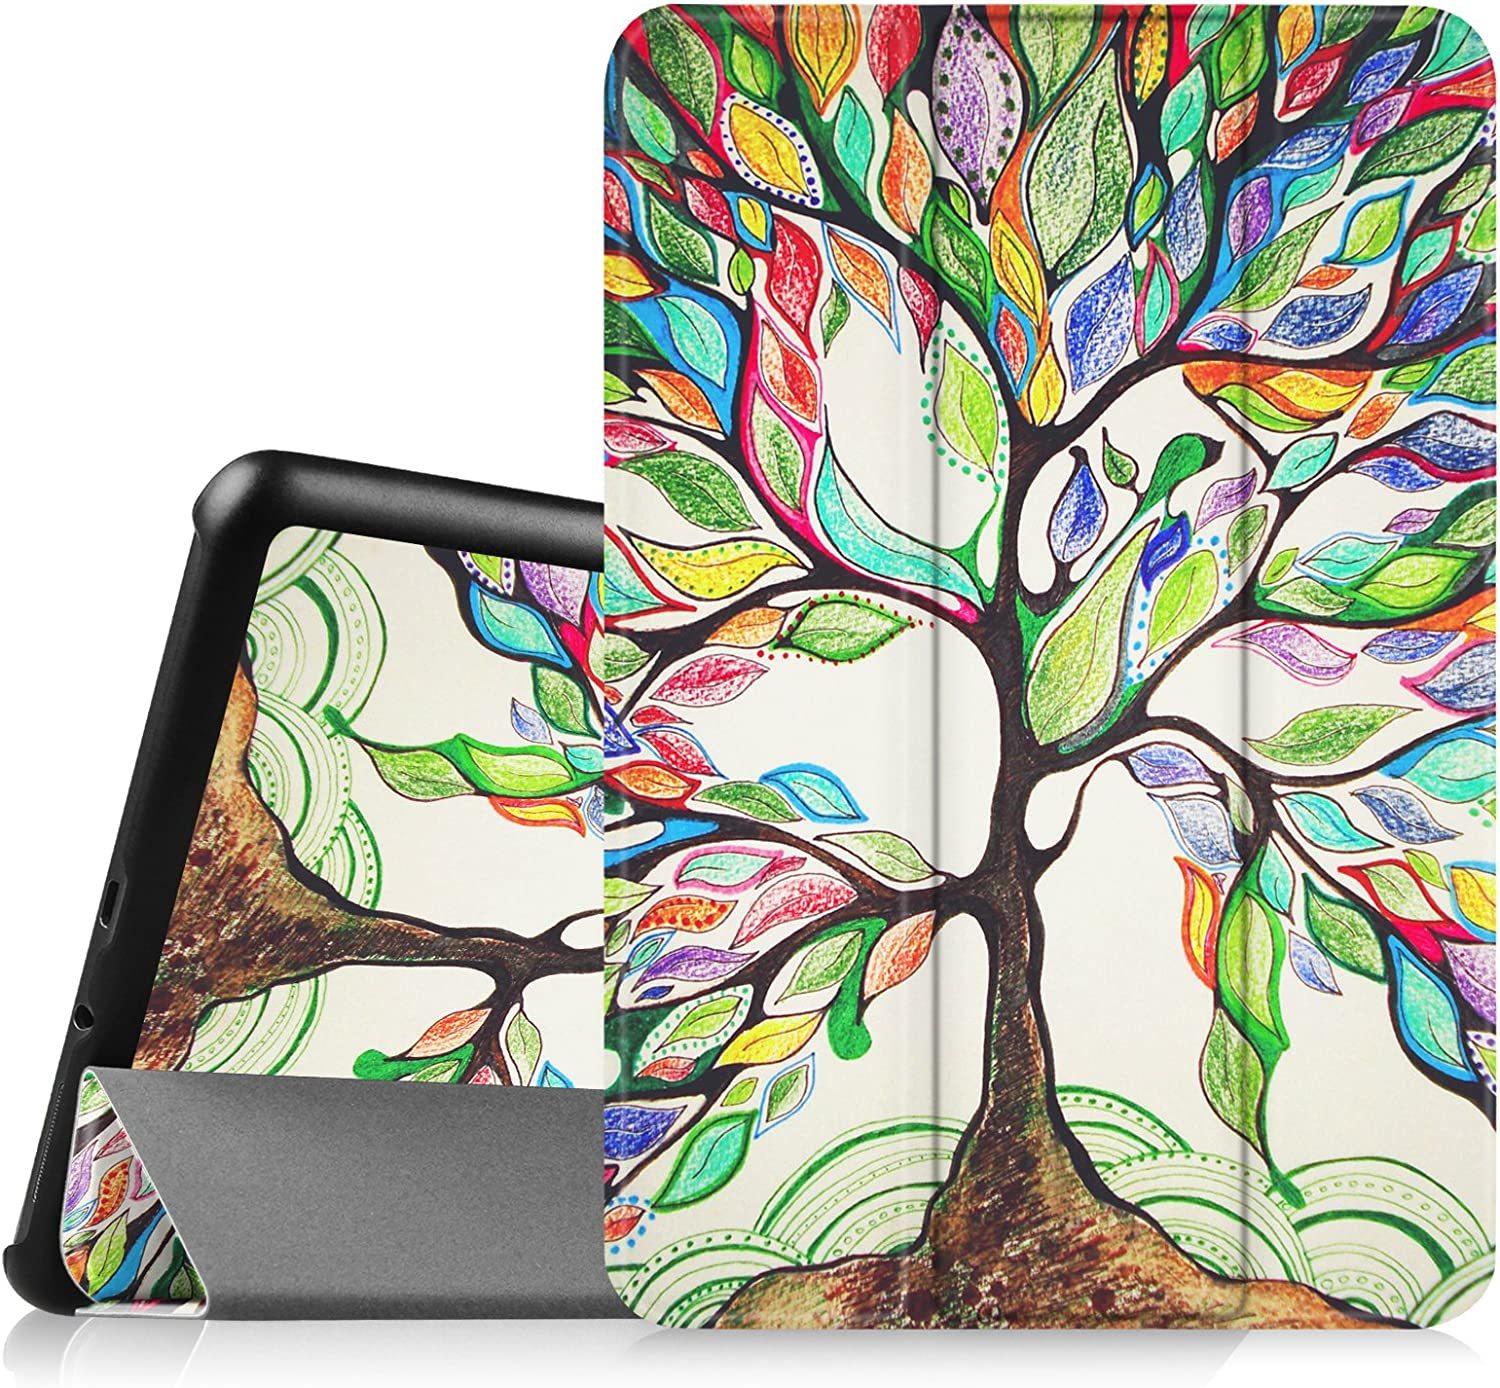 Fintie Slim Shell Case for Samsung Galaxy Tab 4 8.0 (8-Inch) Case - Ultra Lightweight Protective Stand Cover with Auto Sleep/Wake Feature, Love Tree